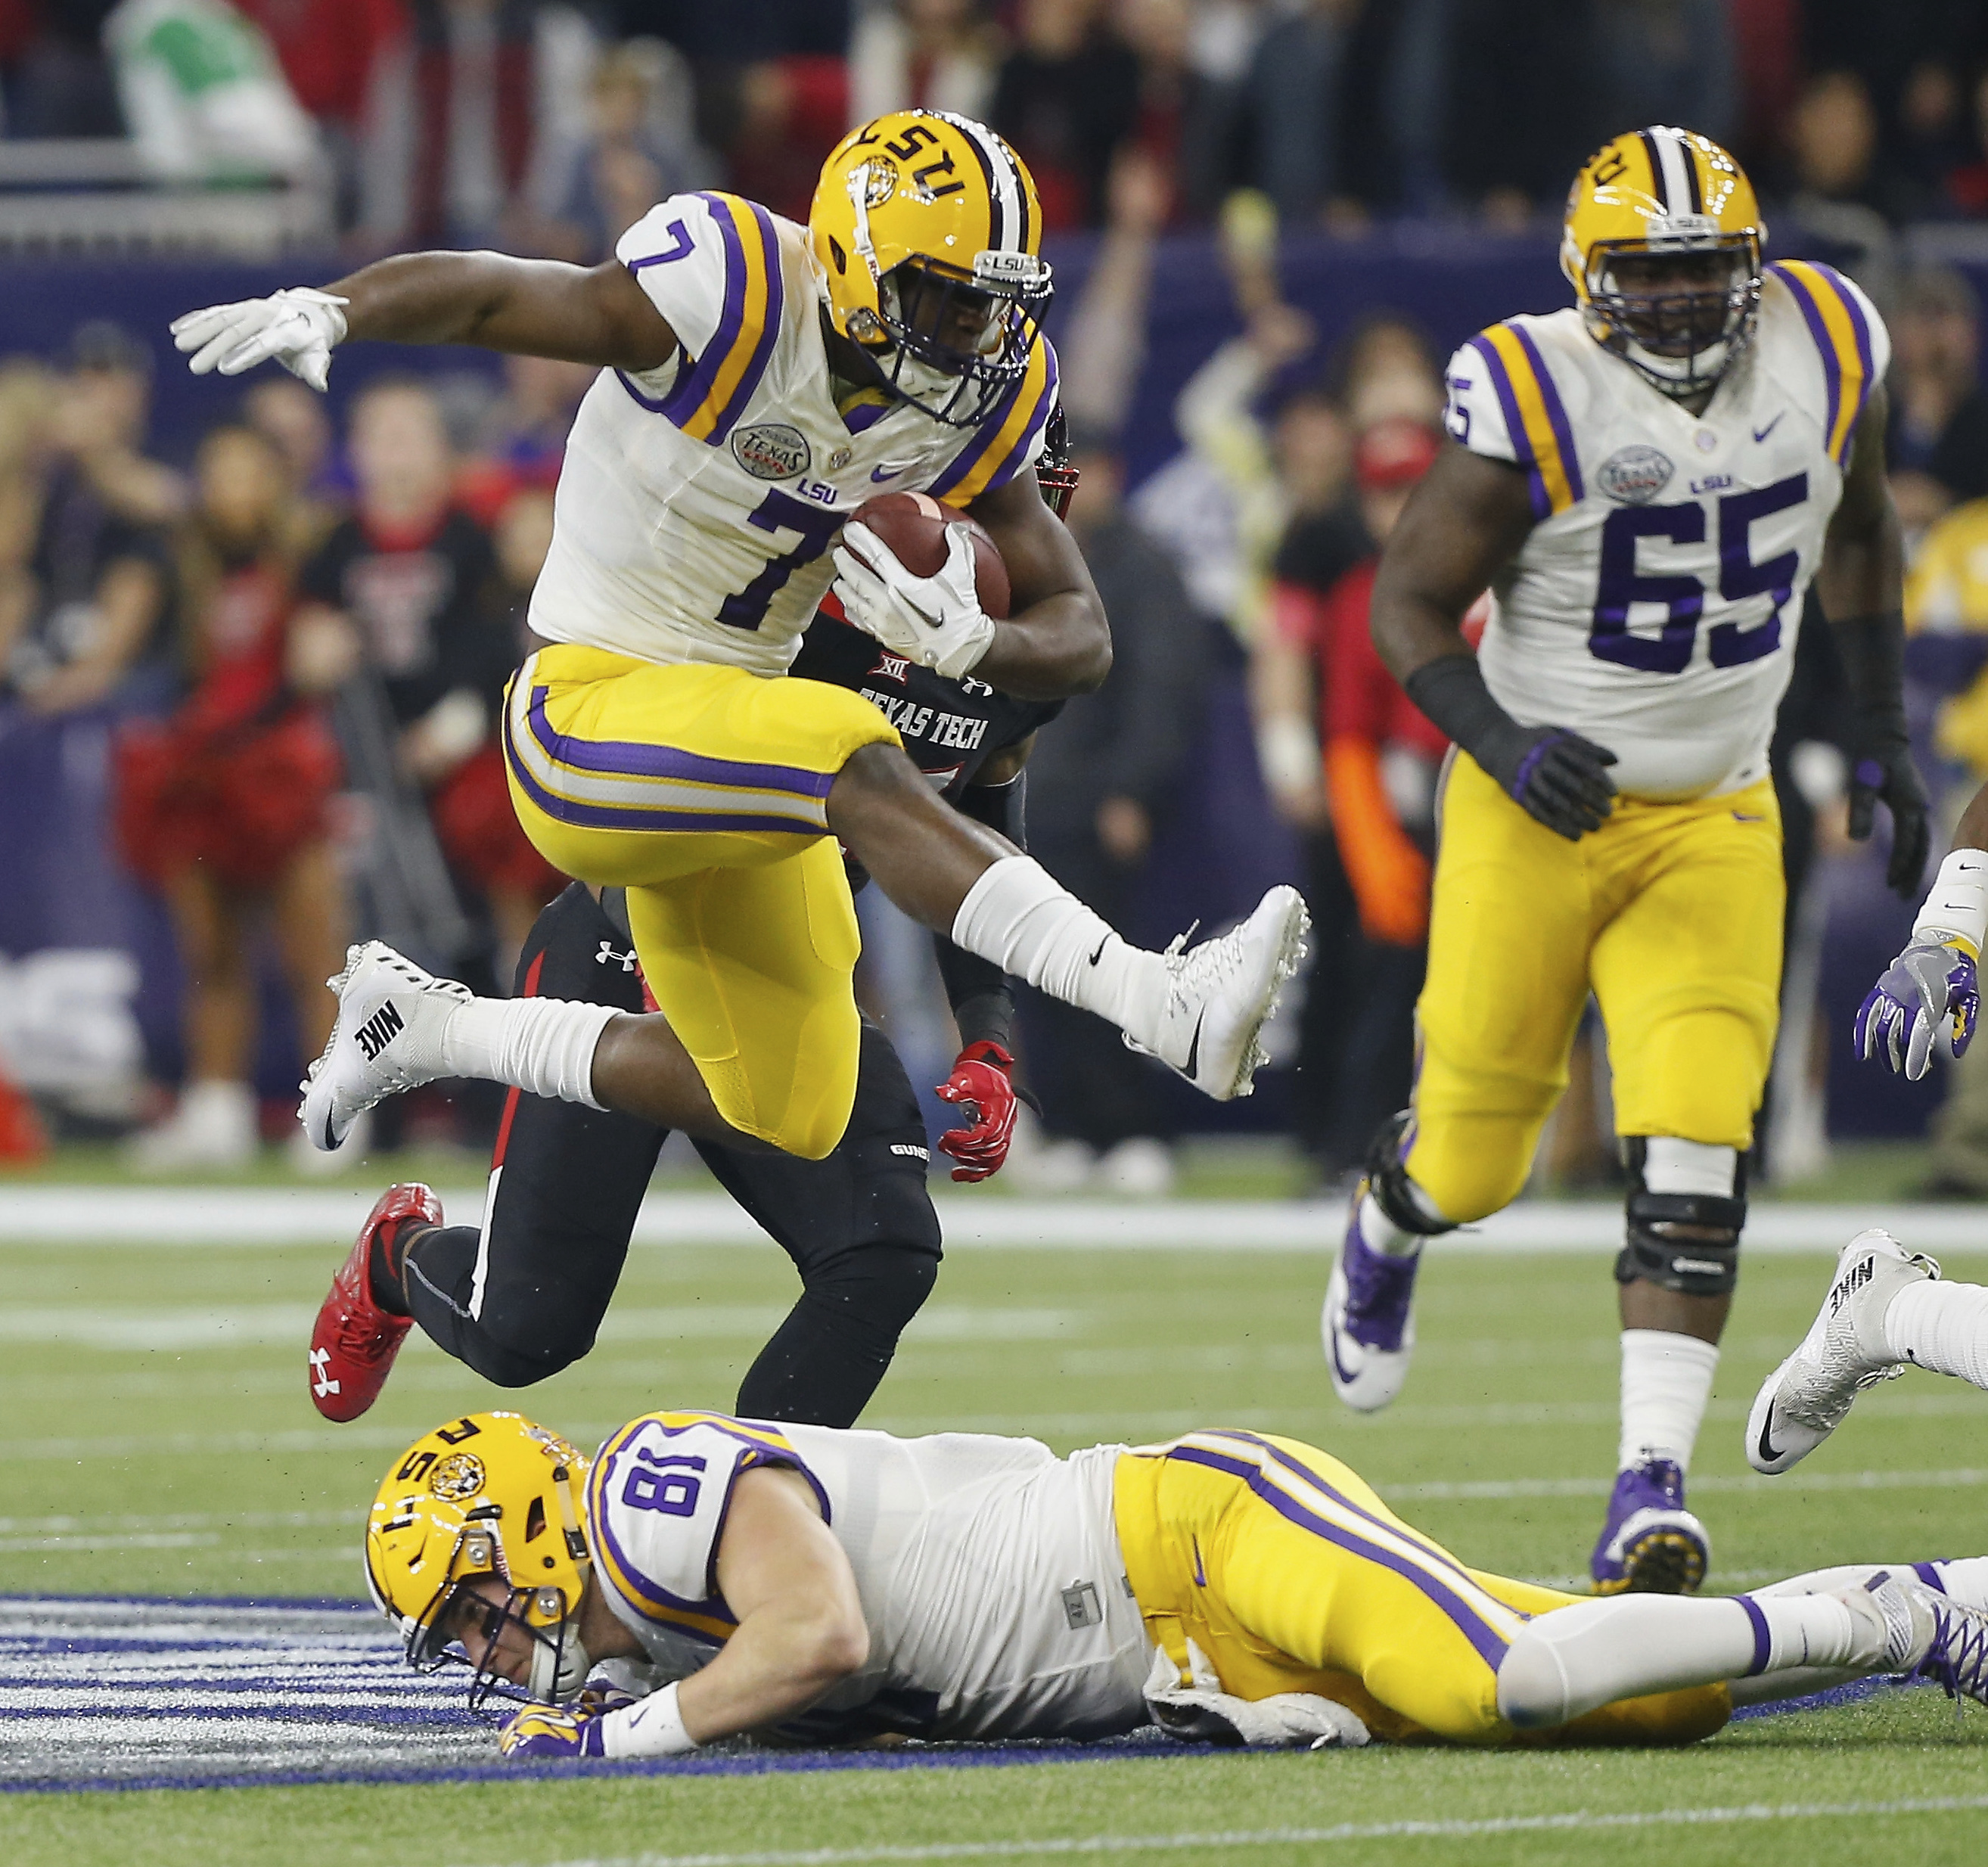 FILE - In this Dec. 29, 2015, file photo, LSU running back Leonard Fournette (7) hurdles tight end Colin Jeter (81) as he rushes against Texas Tech during the first half of the Texas Bowl NCAA college football game in Houston. Lately, the 25th-ranked Tige